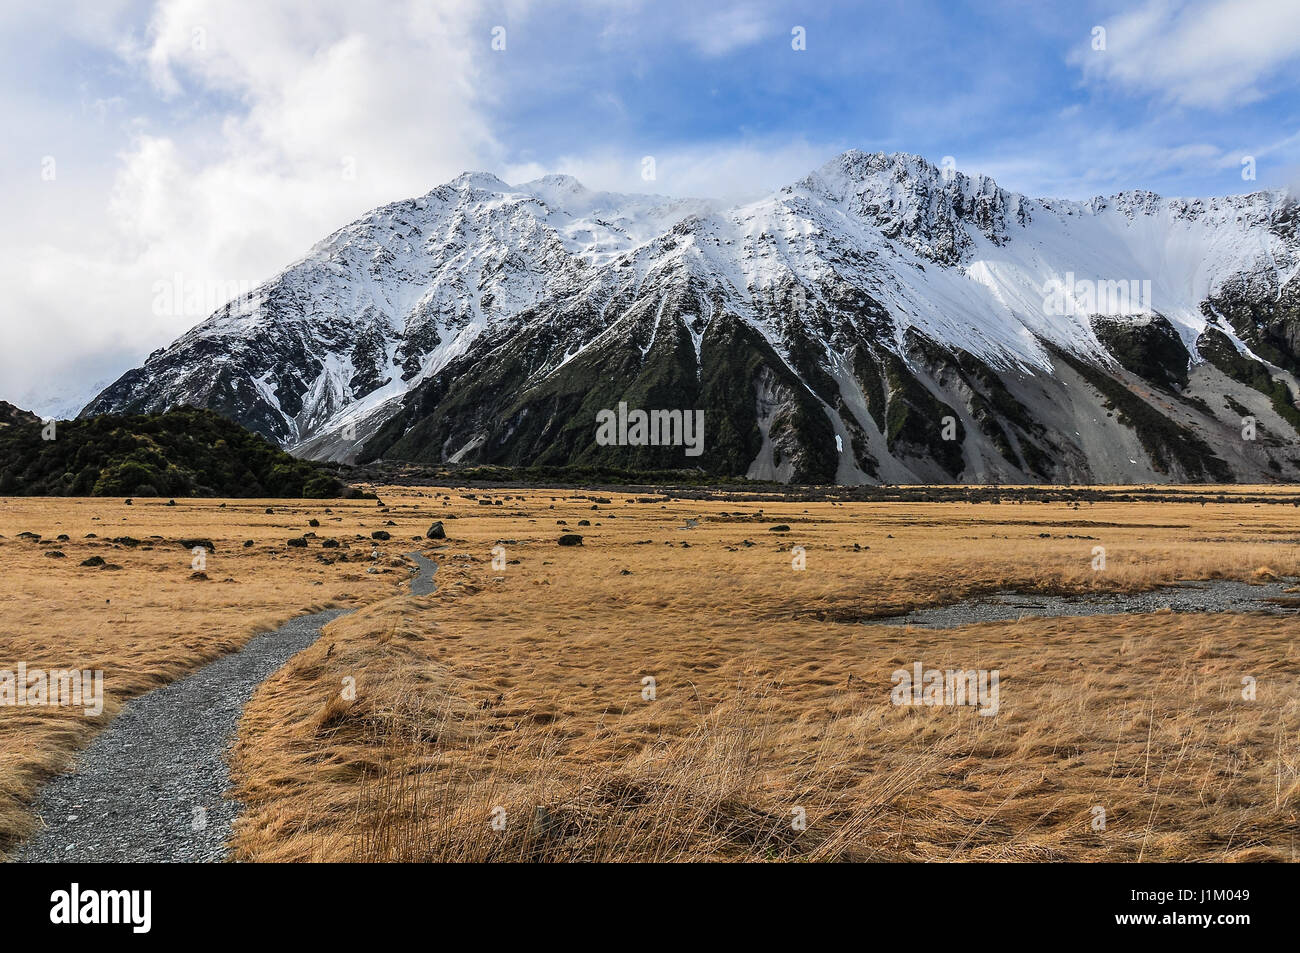 Following the Hooker Track in the Aoraki/Mount Cook National Park, New Zealand - Stock Image